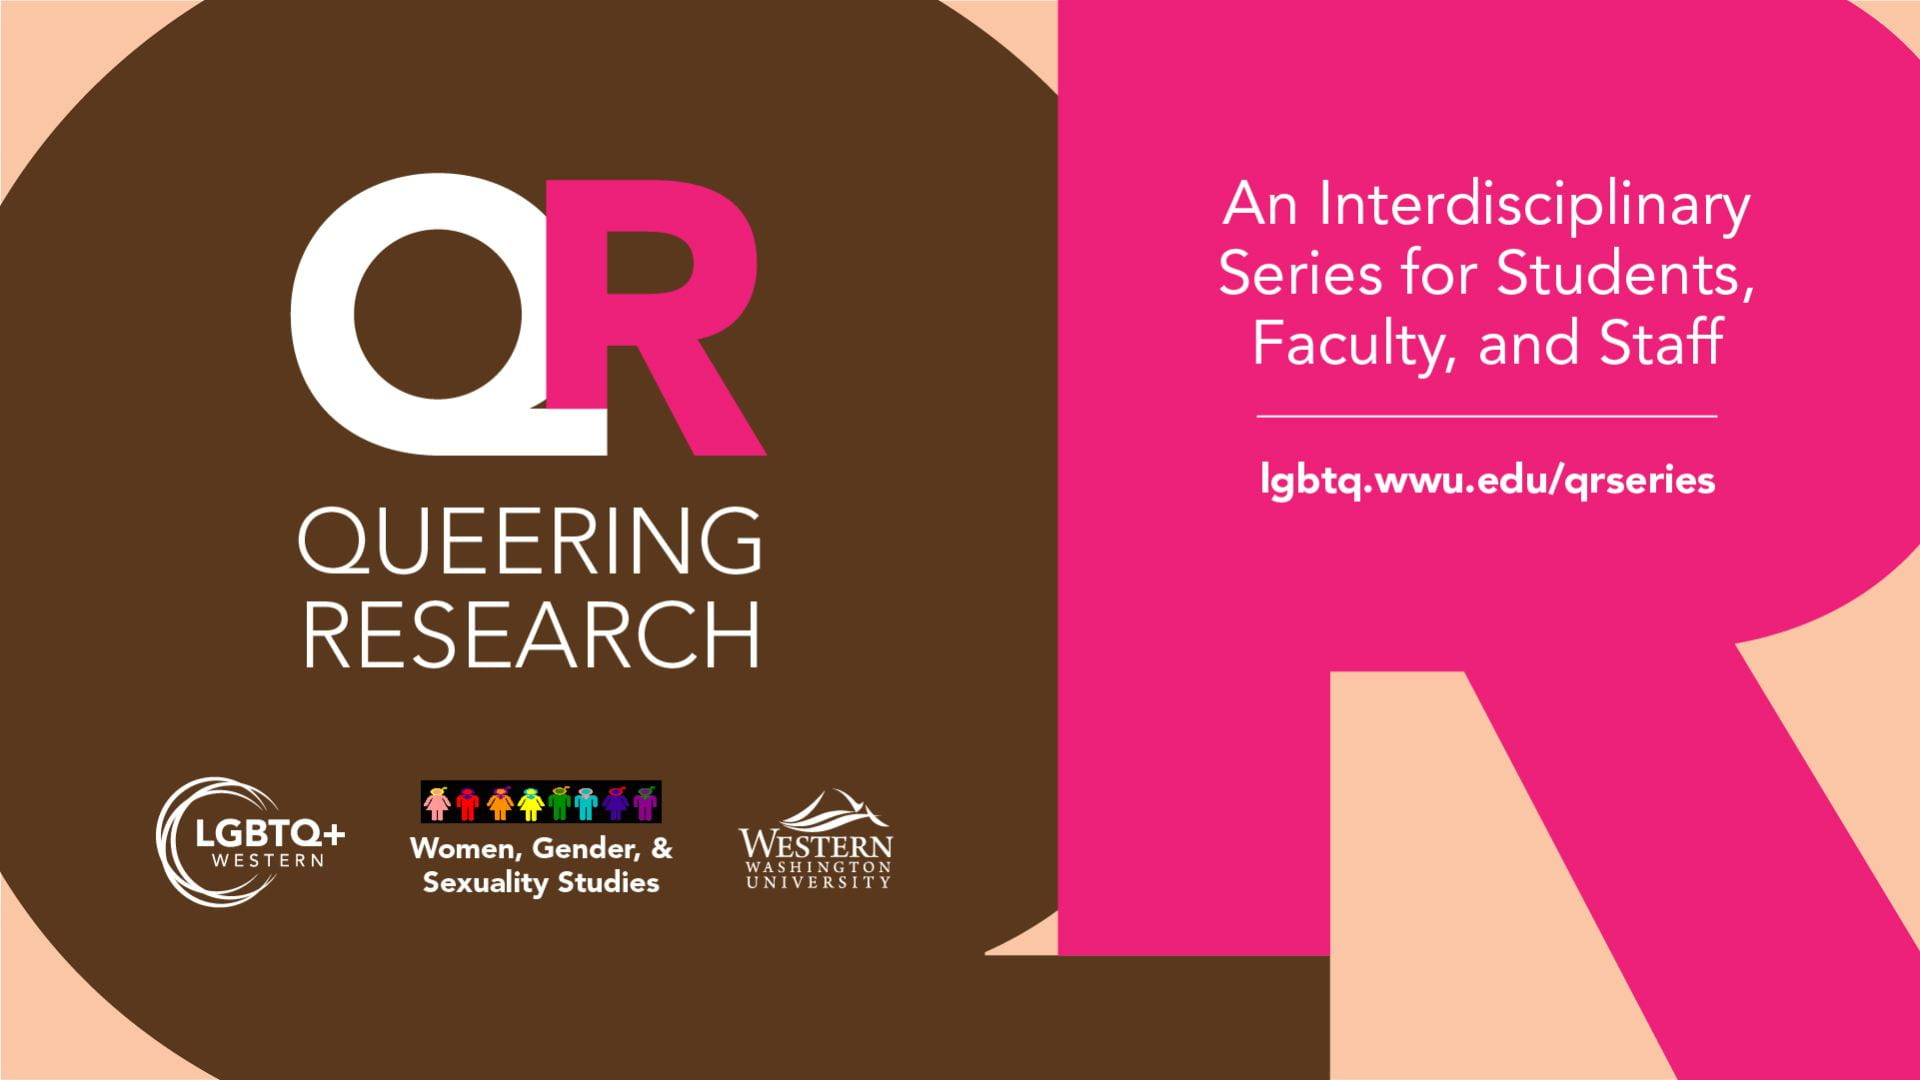 Queering Research. An interdisciplinary series for students, faculty, and staff. LGBTQ+ Western, Women, Gender, and Sexuality Studies, and Western logos. Large QR image in brown and pink.